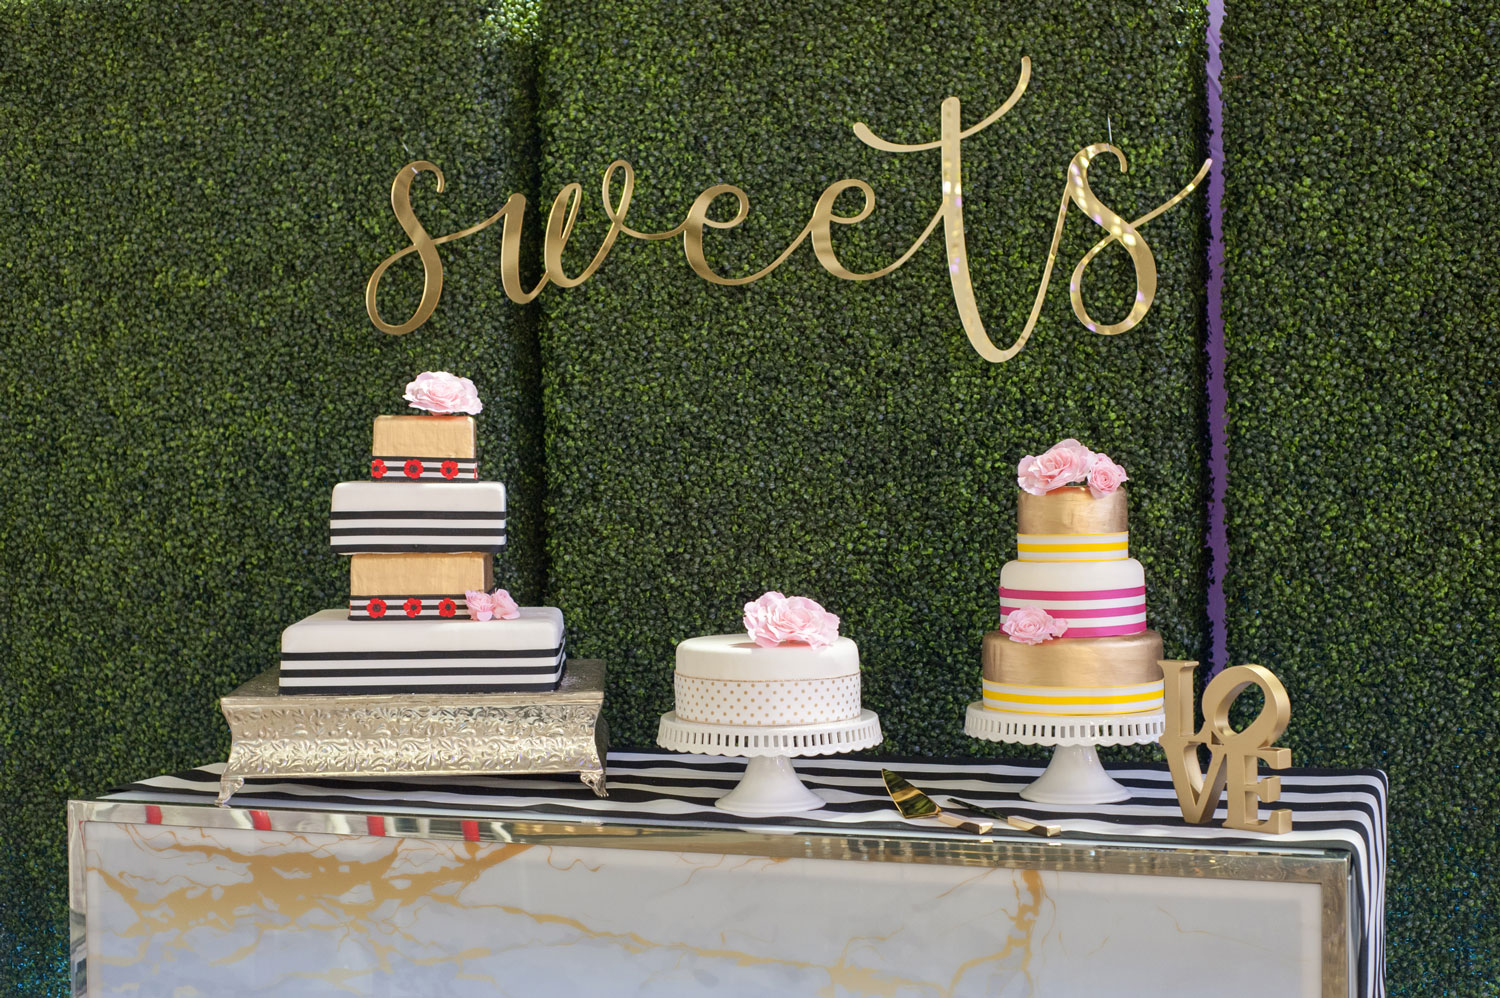 UNVEILED - The Ultimate Wedding Planning Event by The Wedding Guys in Minnesota - sweet cake dessert station